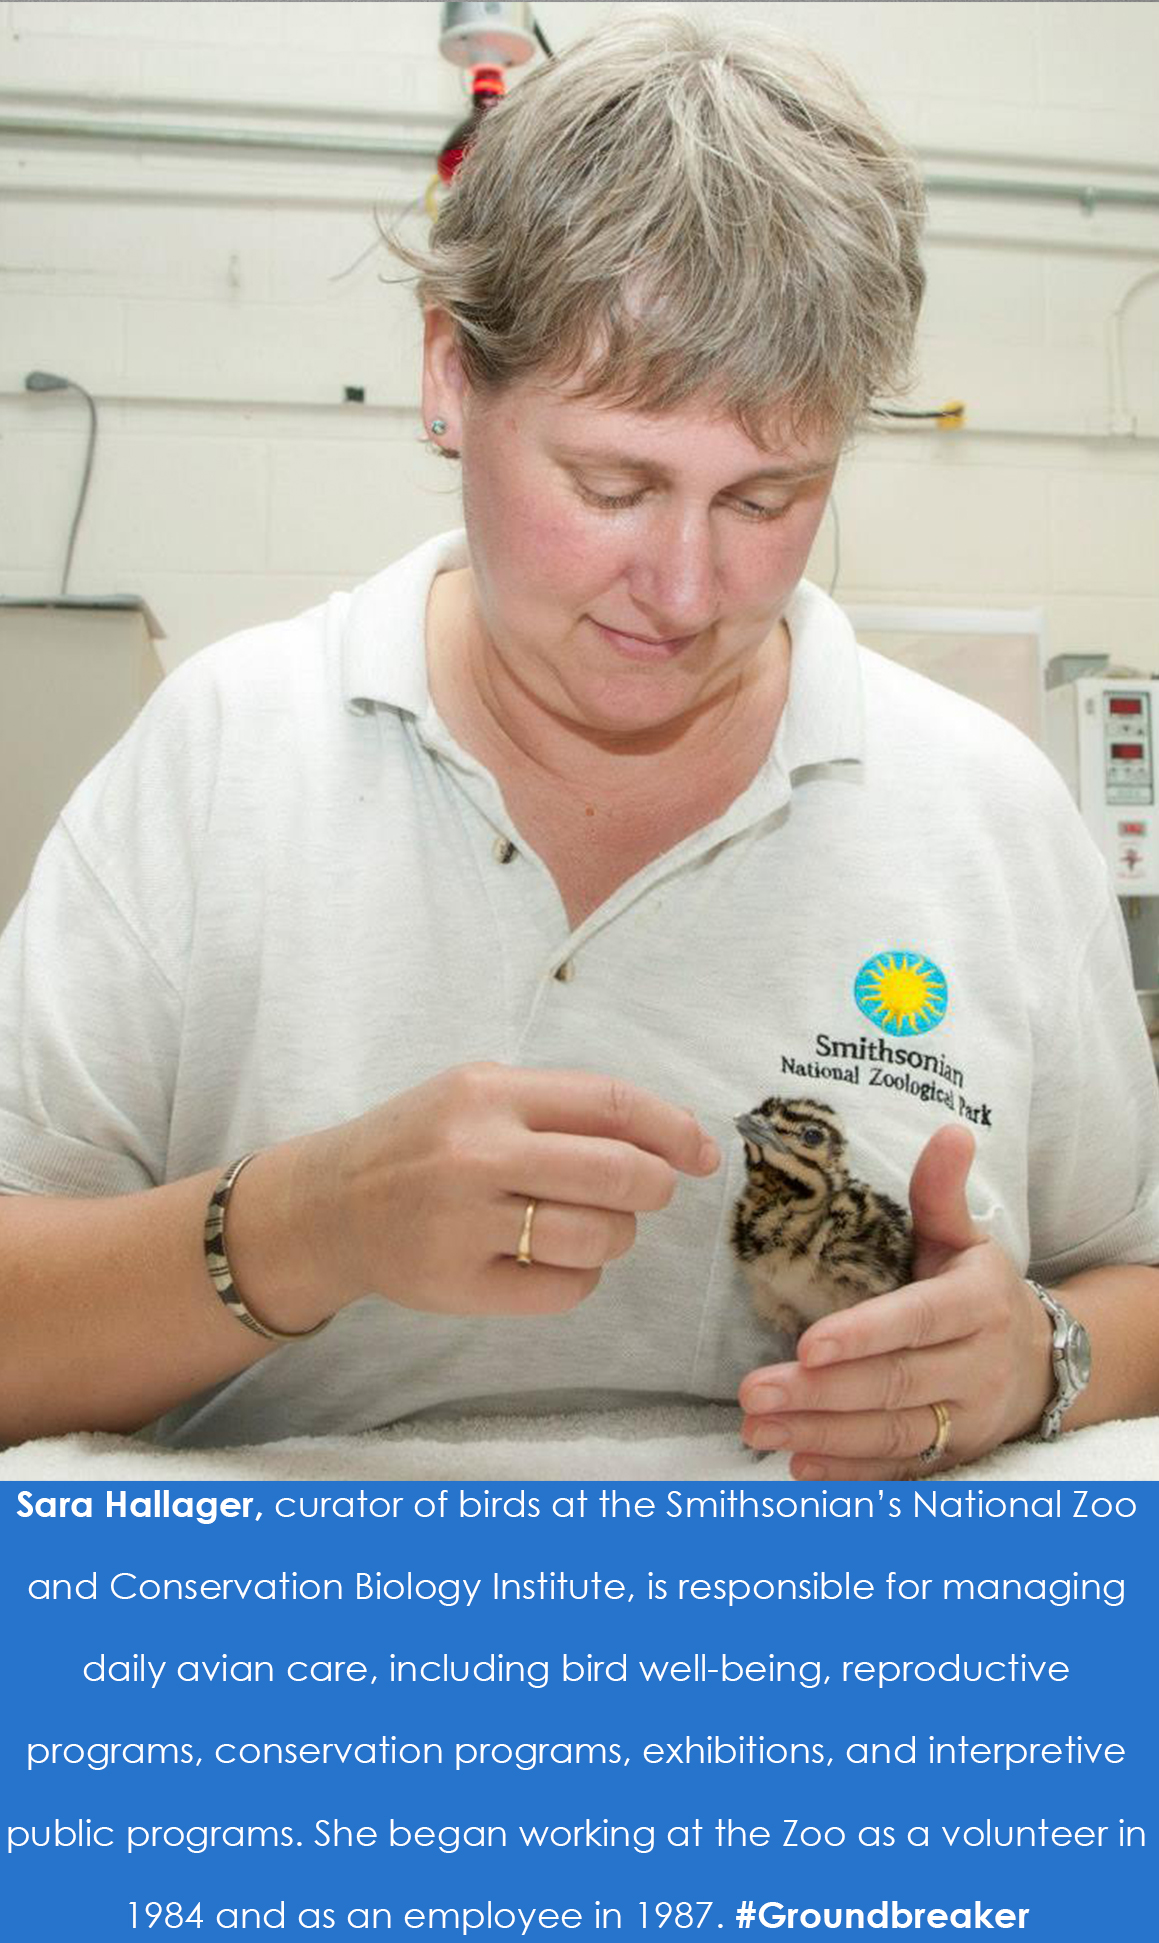 Hallager holding a kori bustard. The caption below reads: Sara Hallager, curator of birds at the Smi